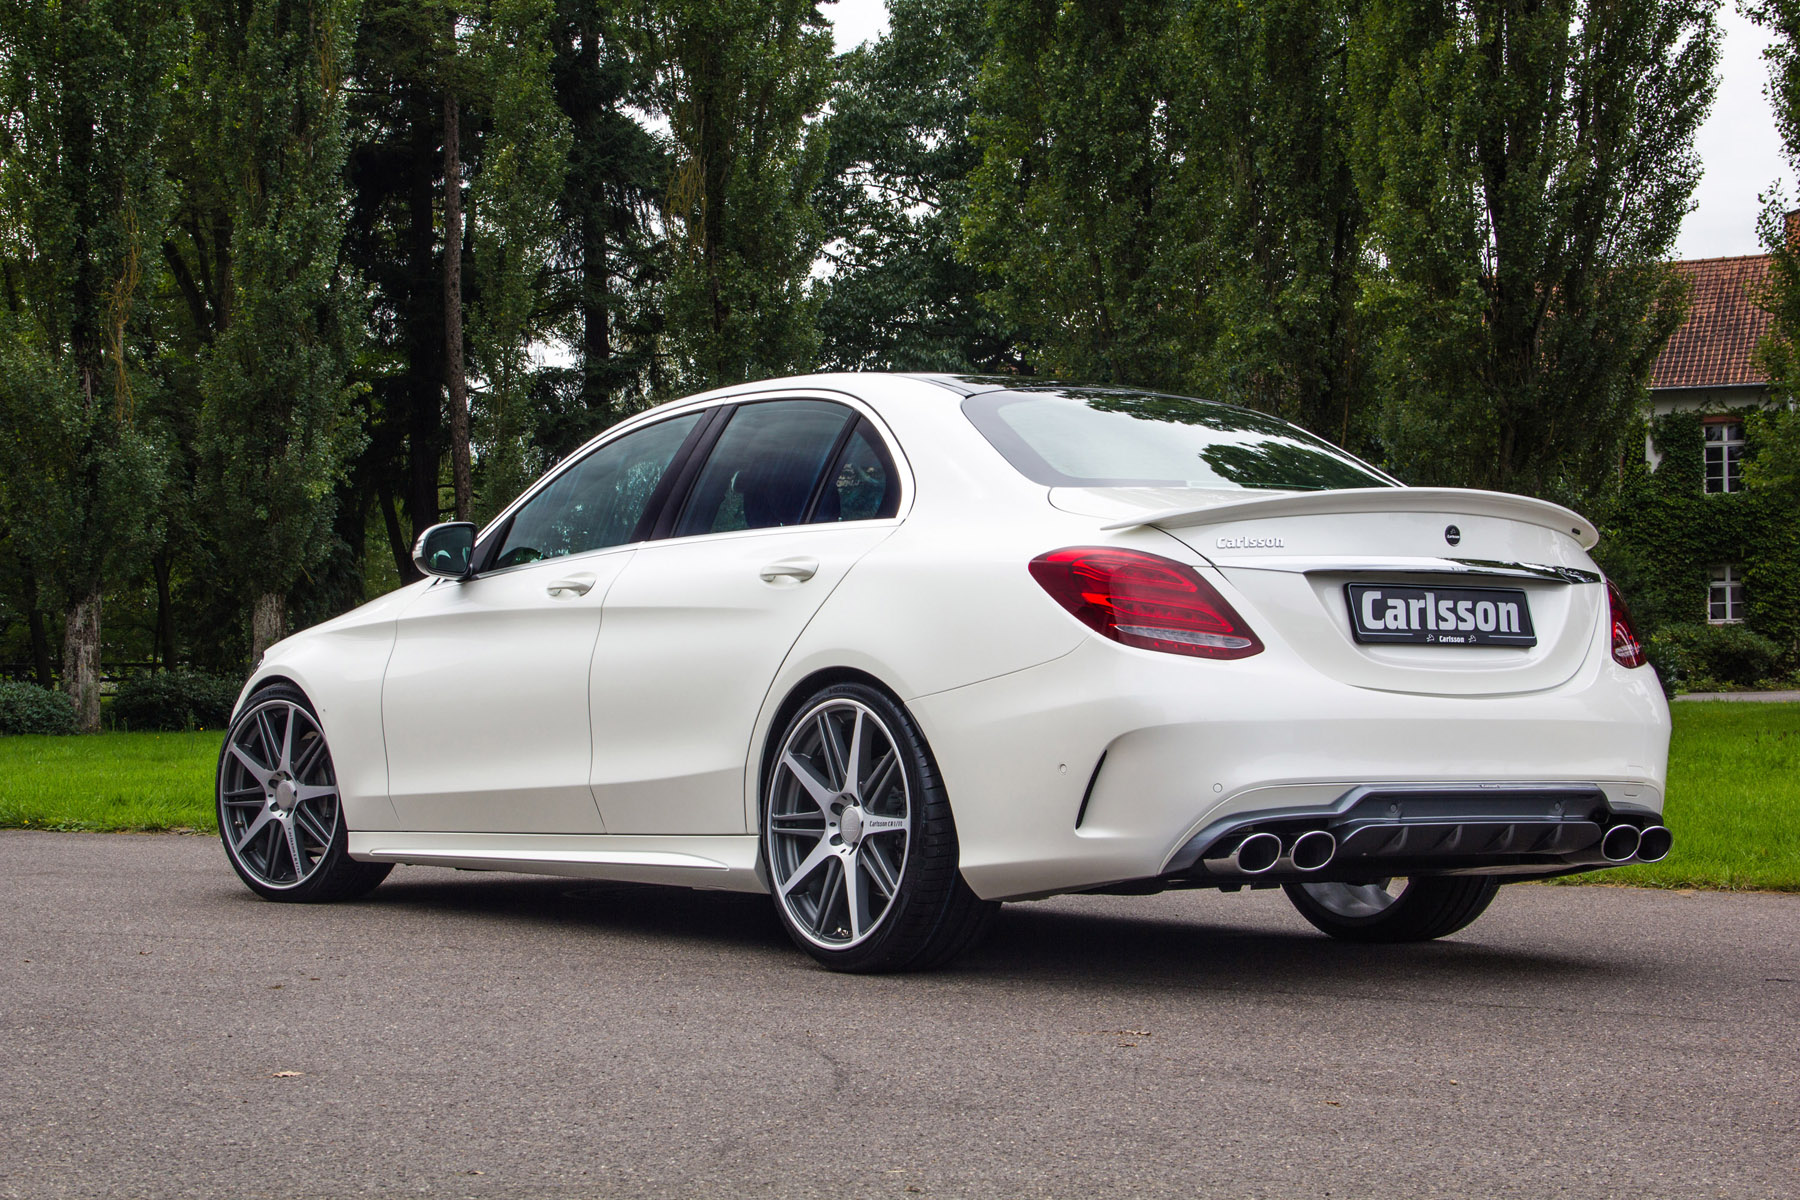 carlsson tunes the amg version of mercedes benz c class. Black Bedroom Furniture Sets. Home Design Ideas